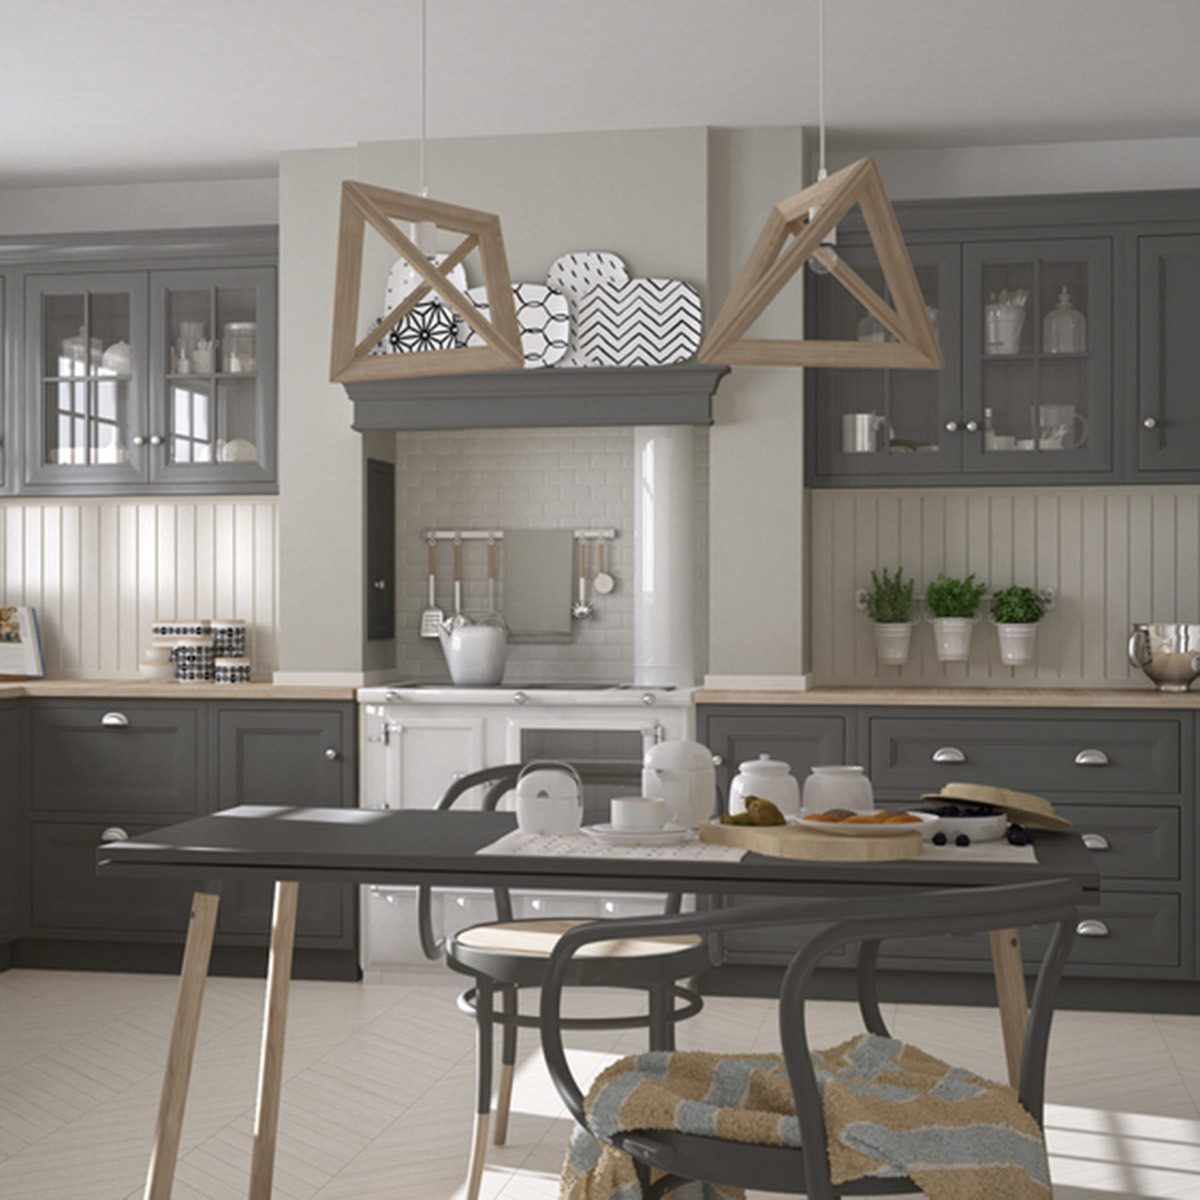 Kitchen Iland Chesterwood Colour Combination: 15 Kitchen Color Schemes For Your Inner Gourmet